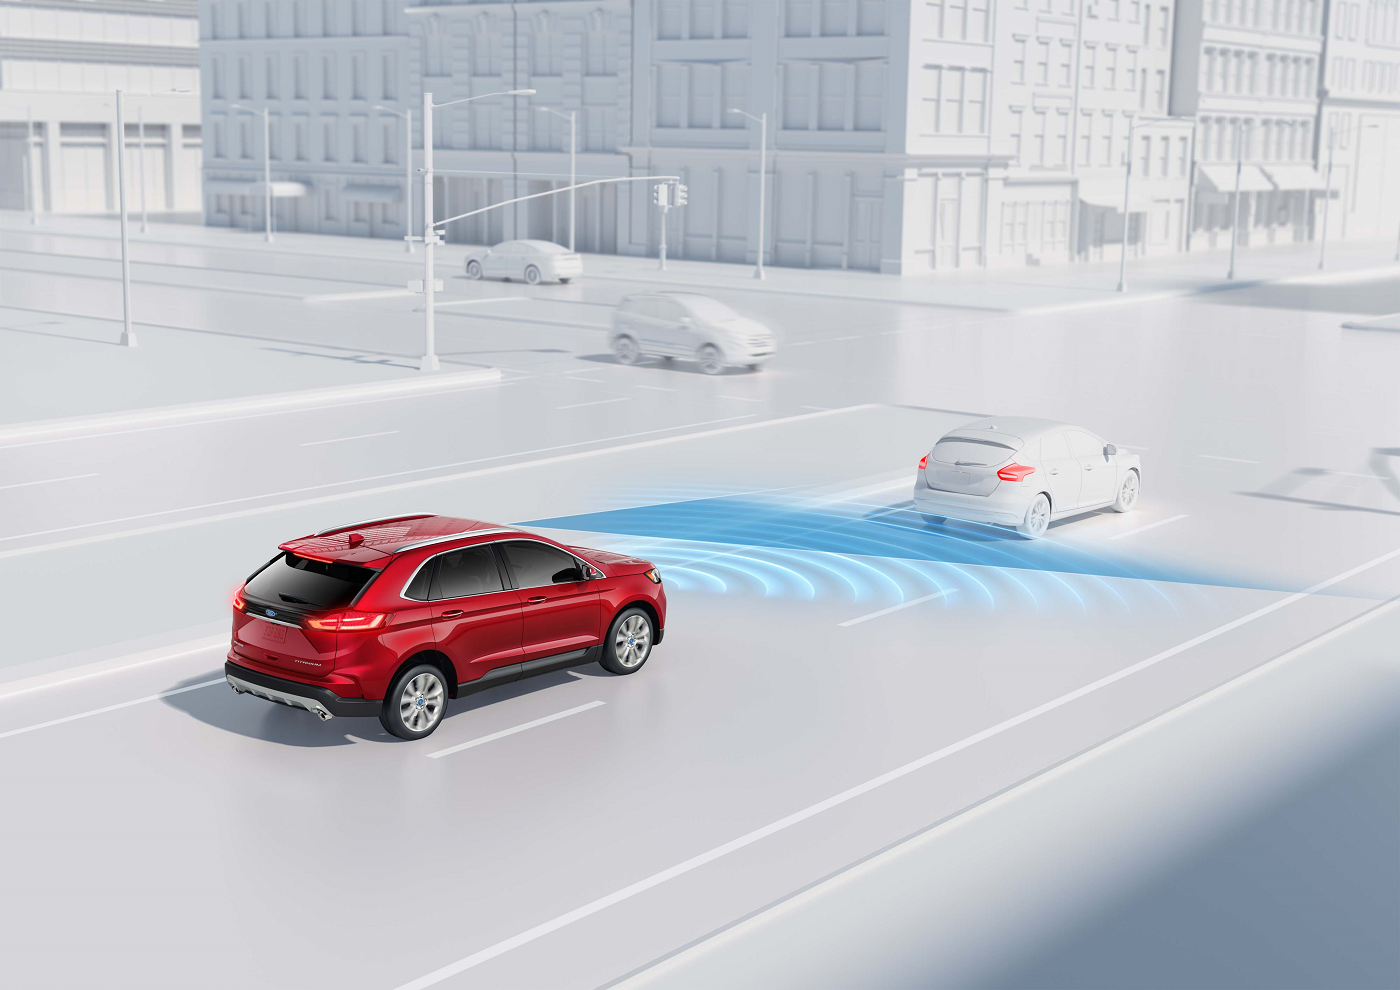 2019 Ford Edge driver assisting technology